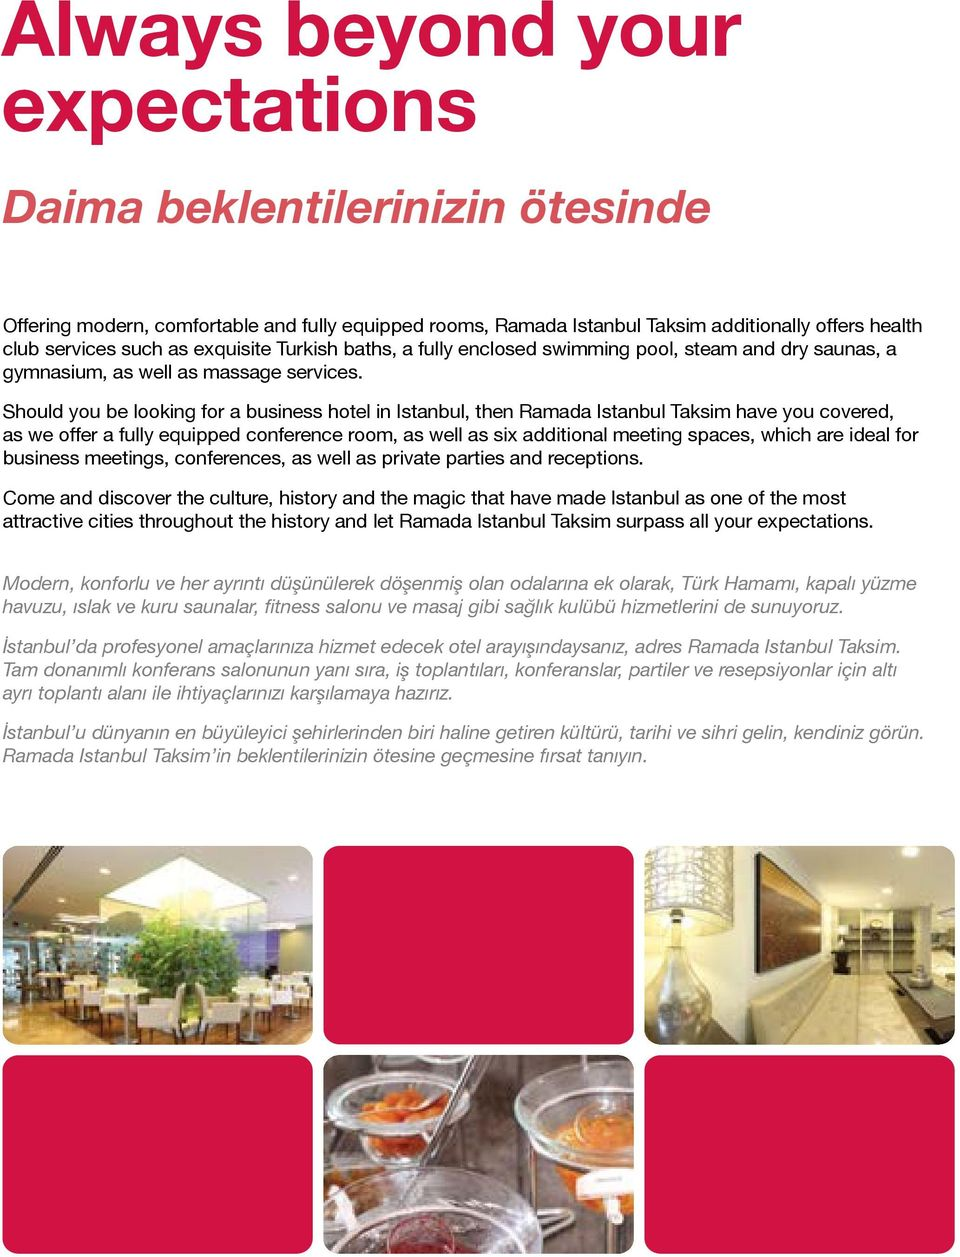 Should you be looking for a business hotel in Istanbul, then Ramada Istanbul Taksim have you covered, as we offer a fully equipped conference room, as well as six additional meeting spaces, which are